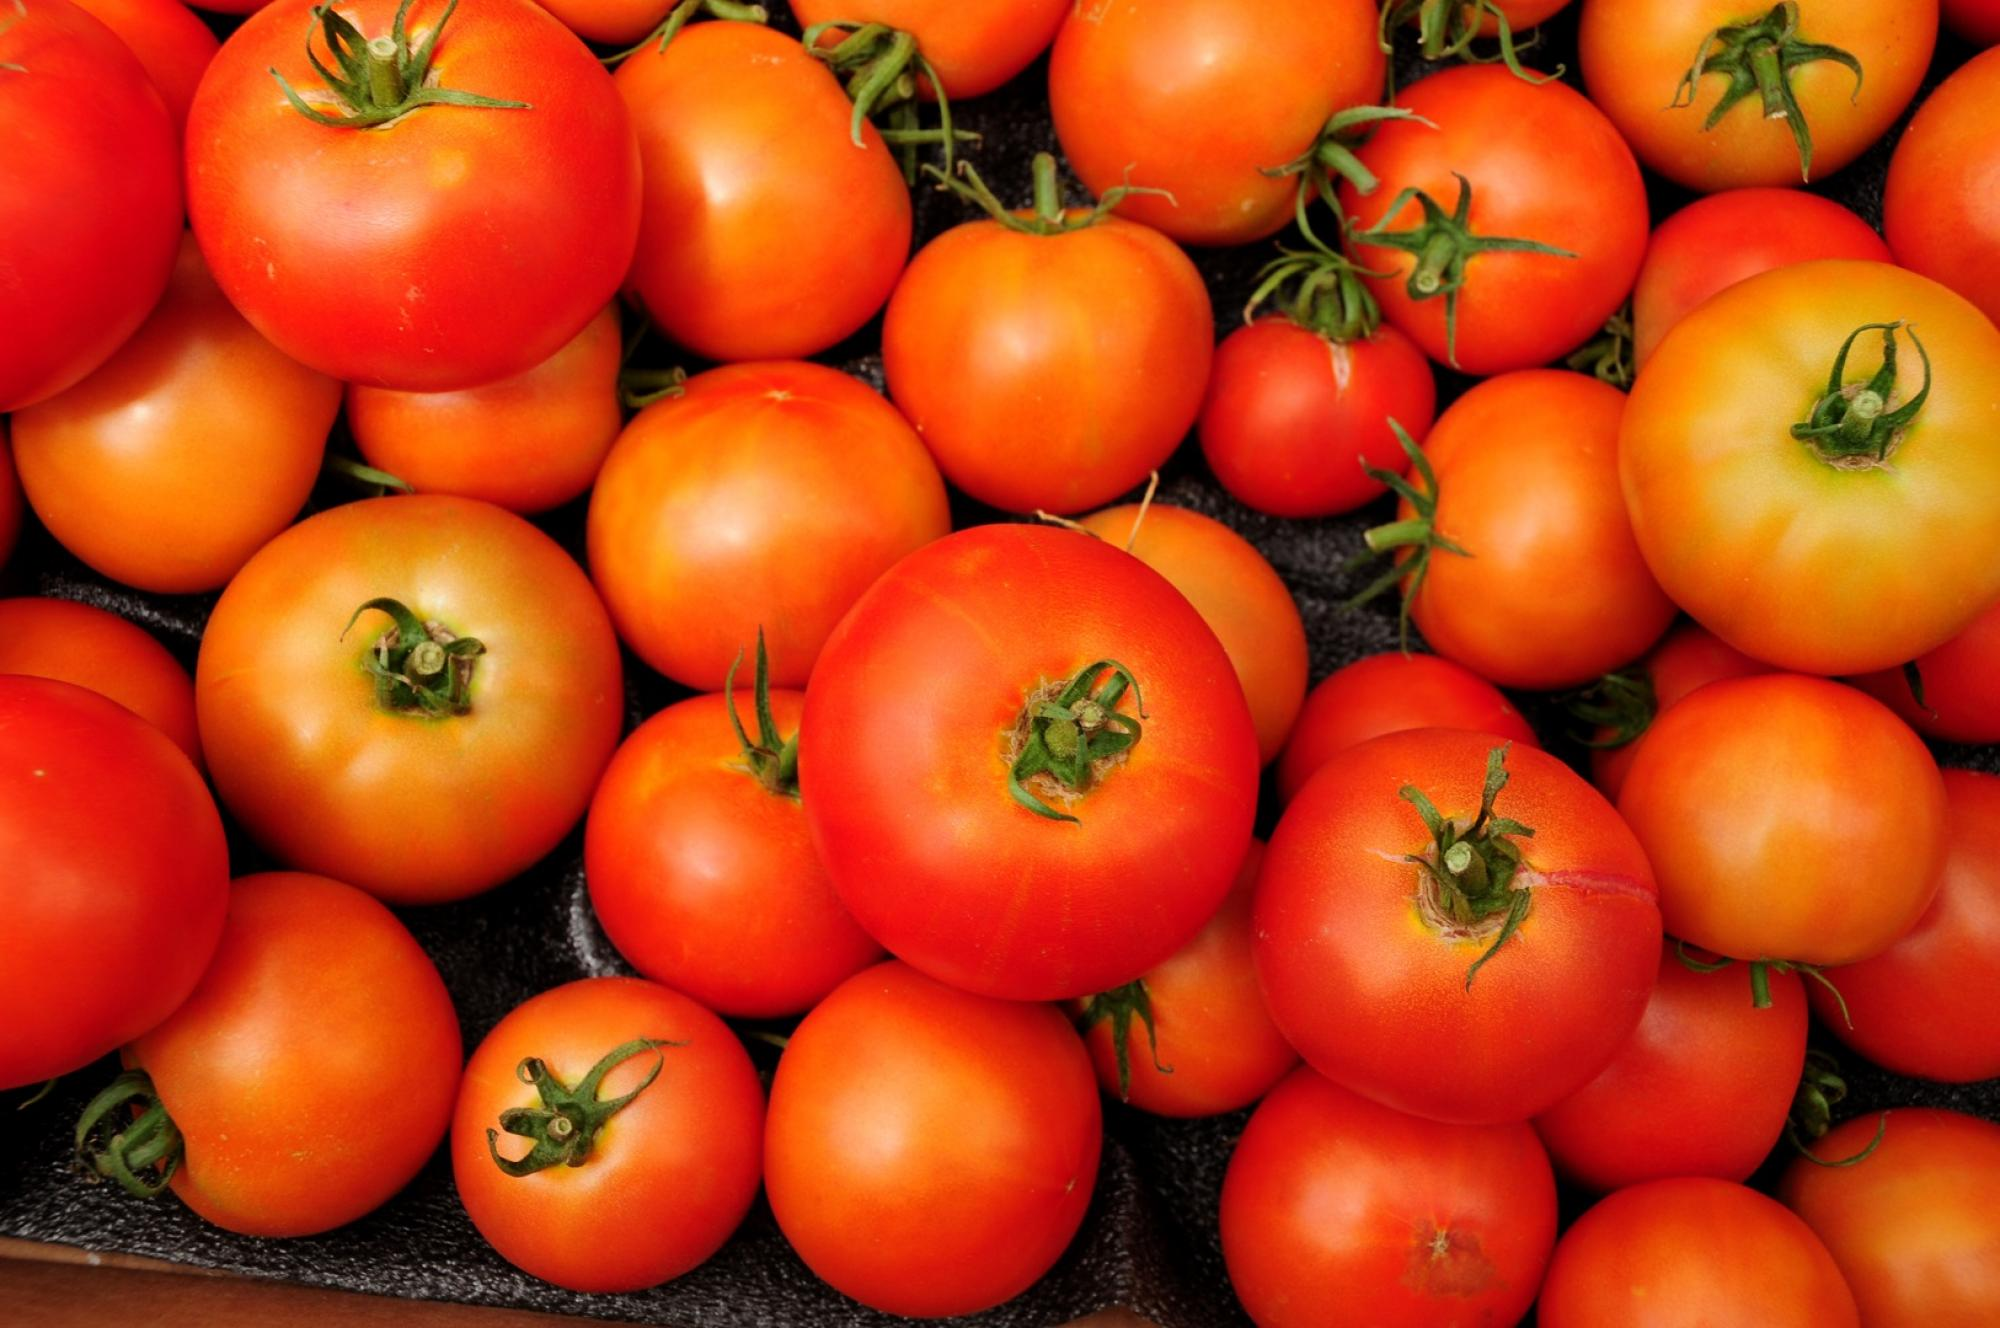 The UA played a part in sequencing the genome of the tomato. Having the genome sequence will allow scientists to locate and identify genes more quickly and improve the crop more rapidly.